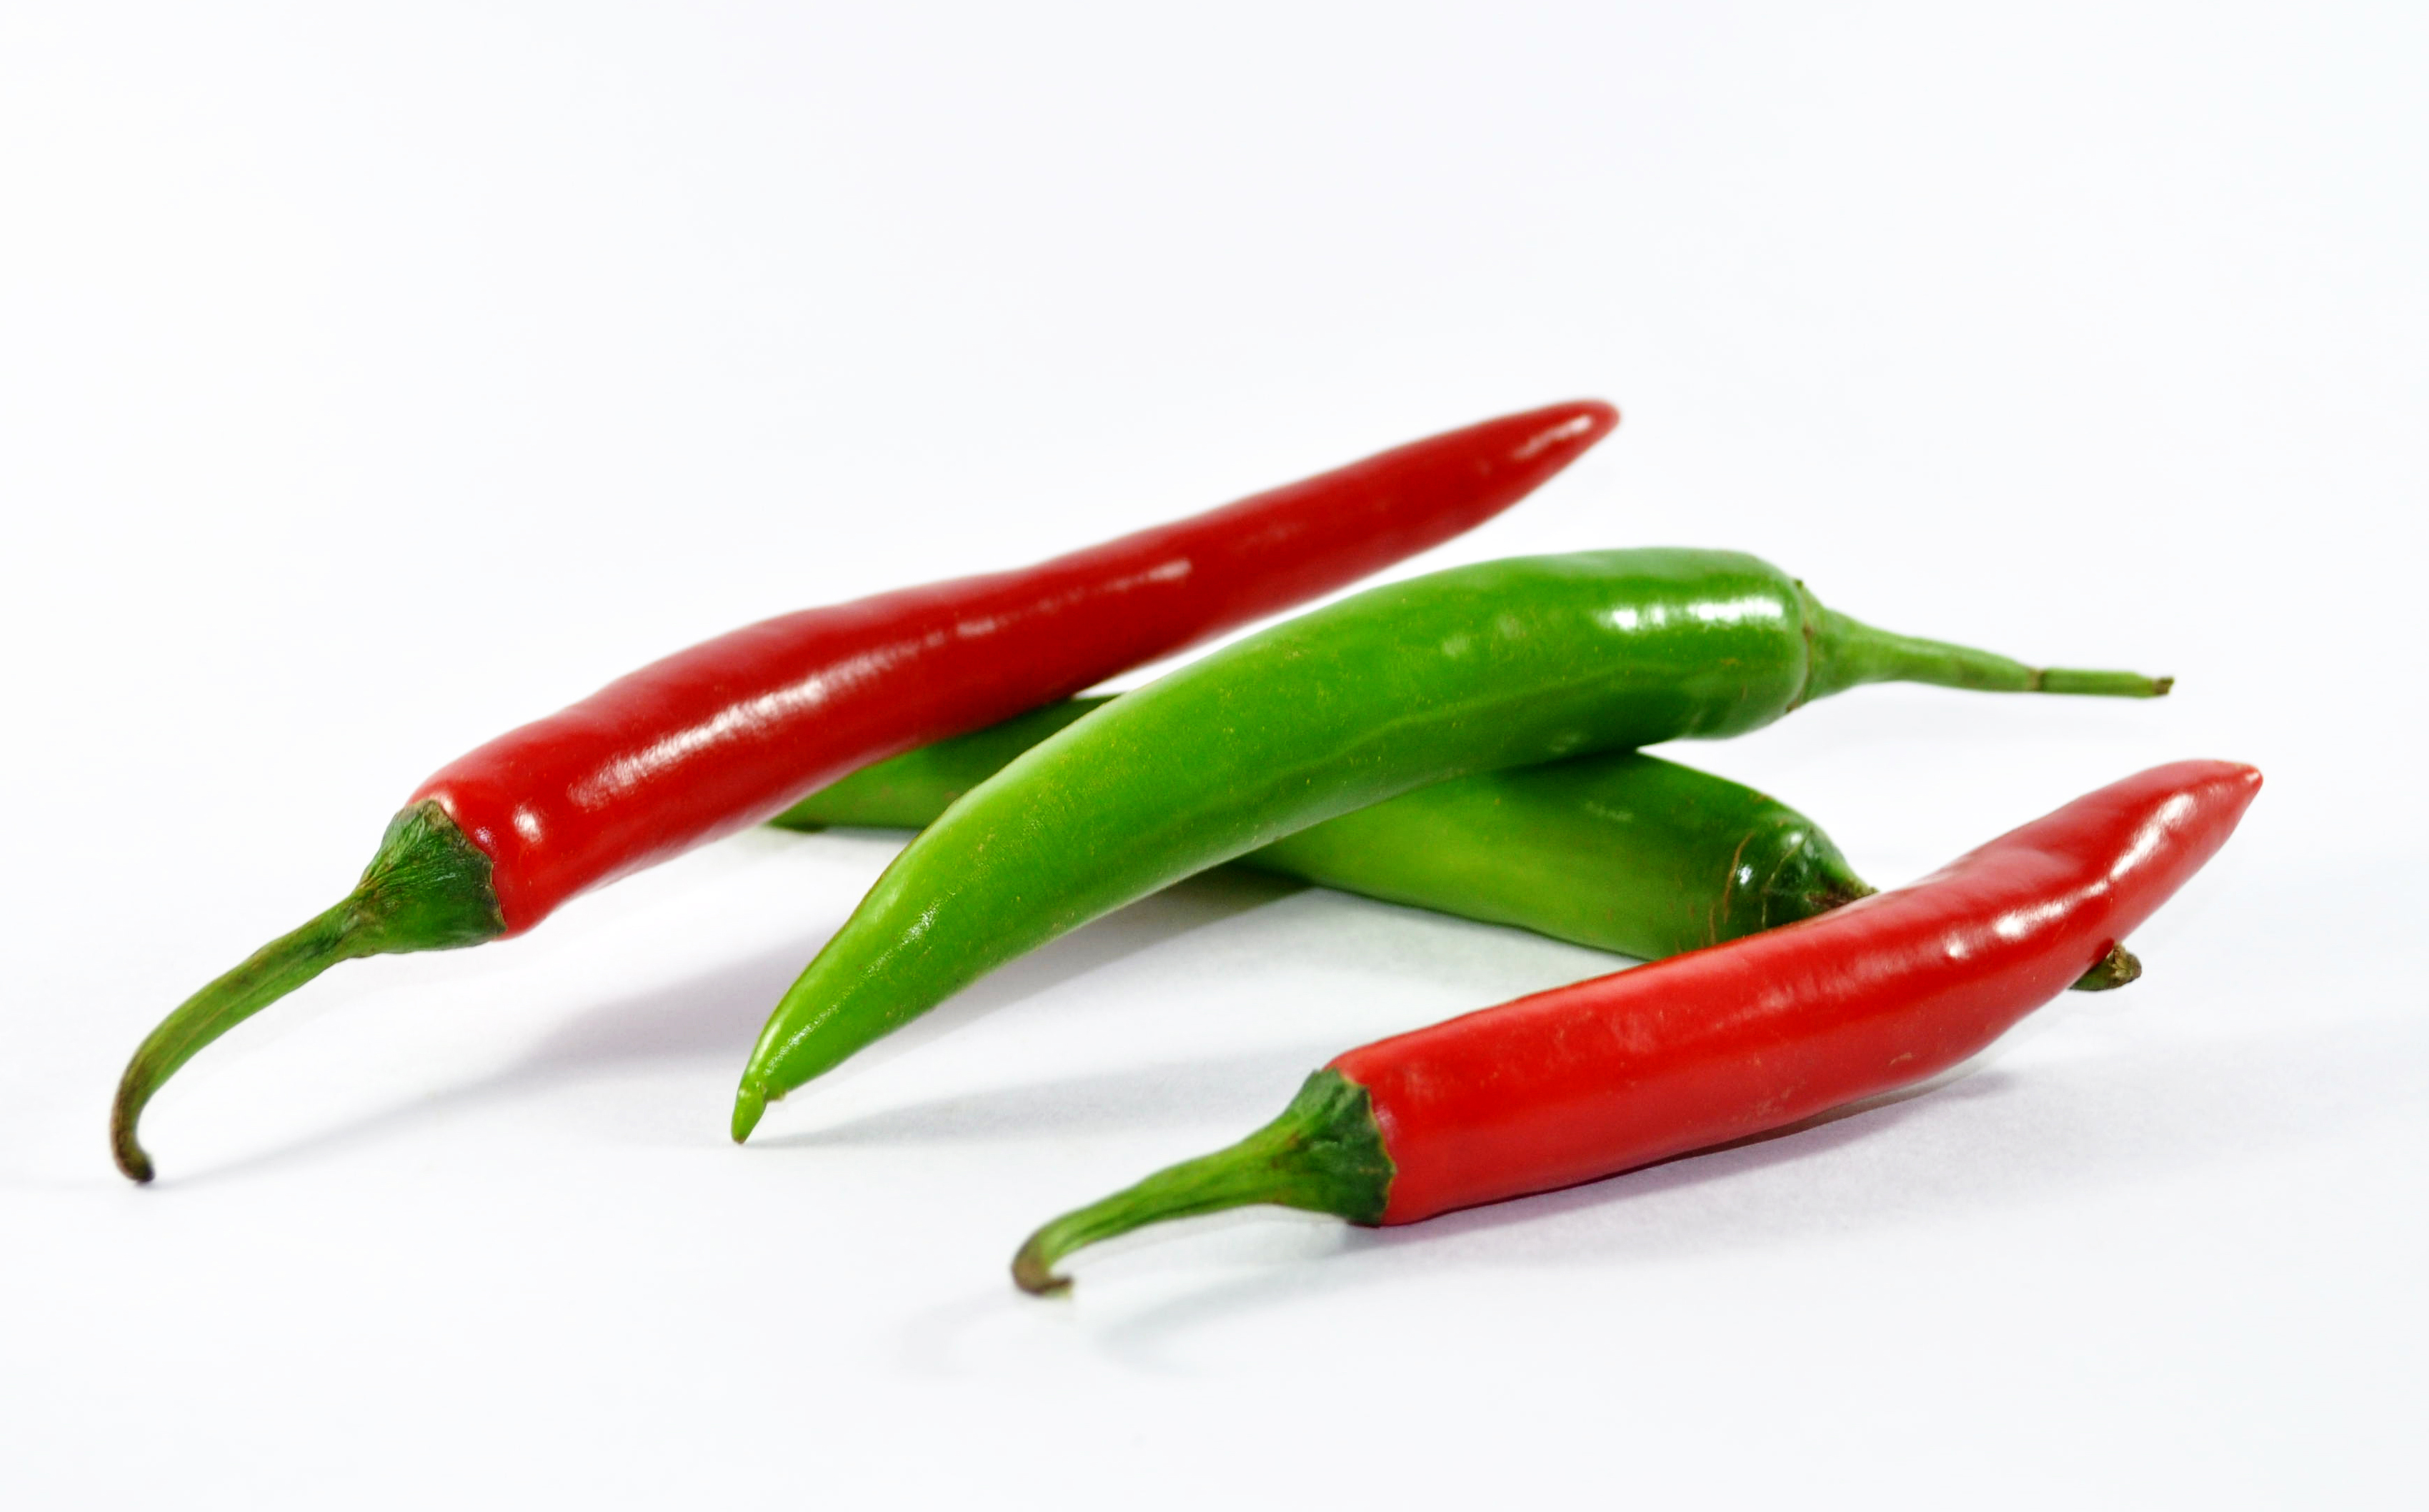 Free photo: Red and Green Chilli - Chillies, Chilly, Food - Free Download - Jooinn